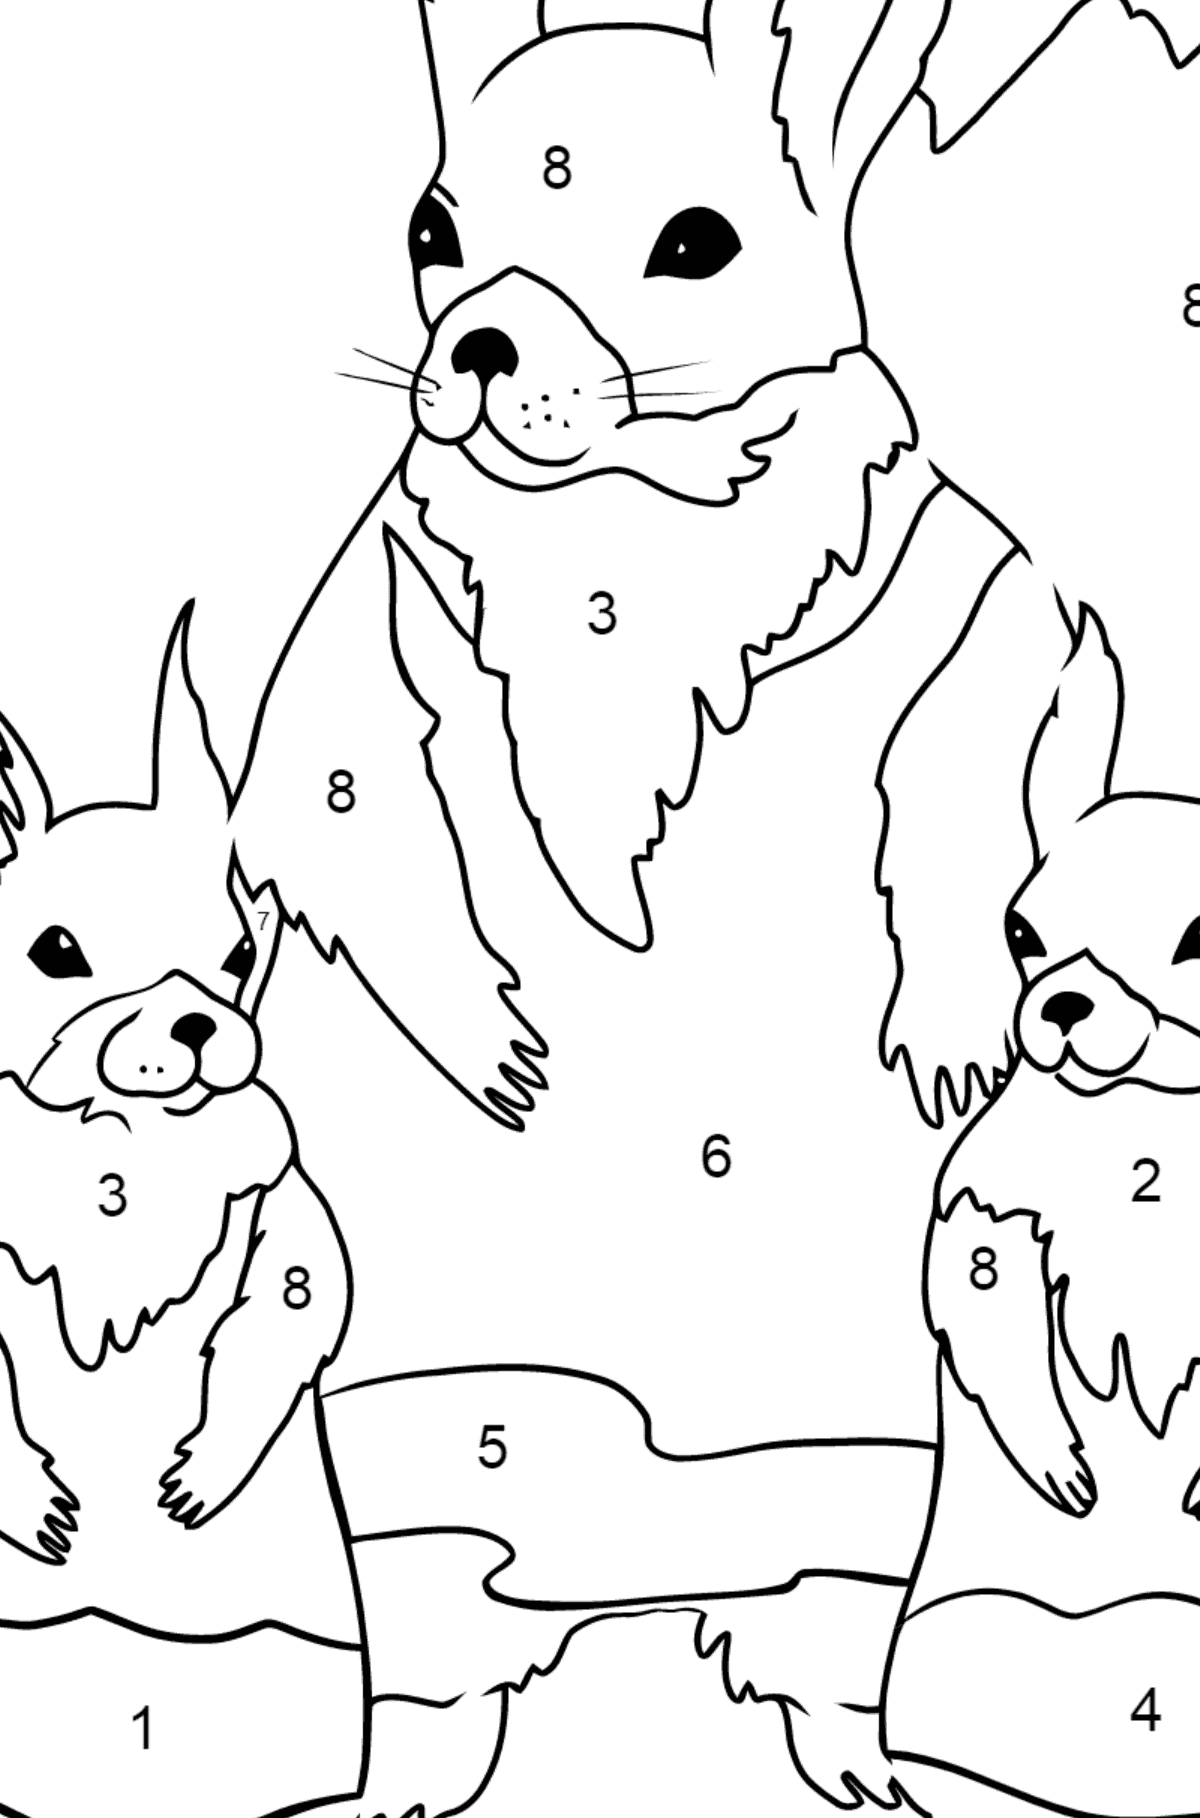 Spring Coloring Page - Squirrels are Preparing to Greet the Sun for Children  - Color by Number